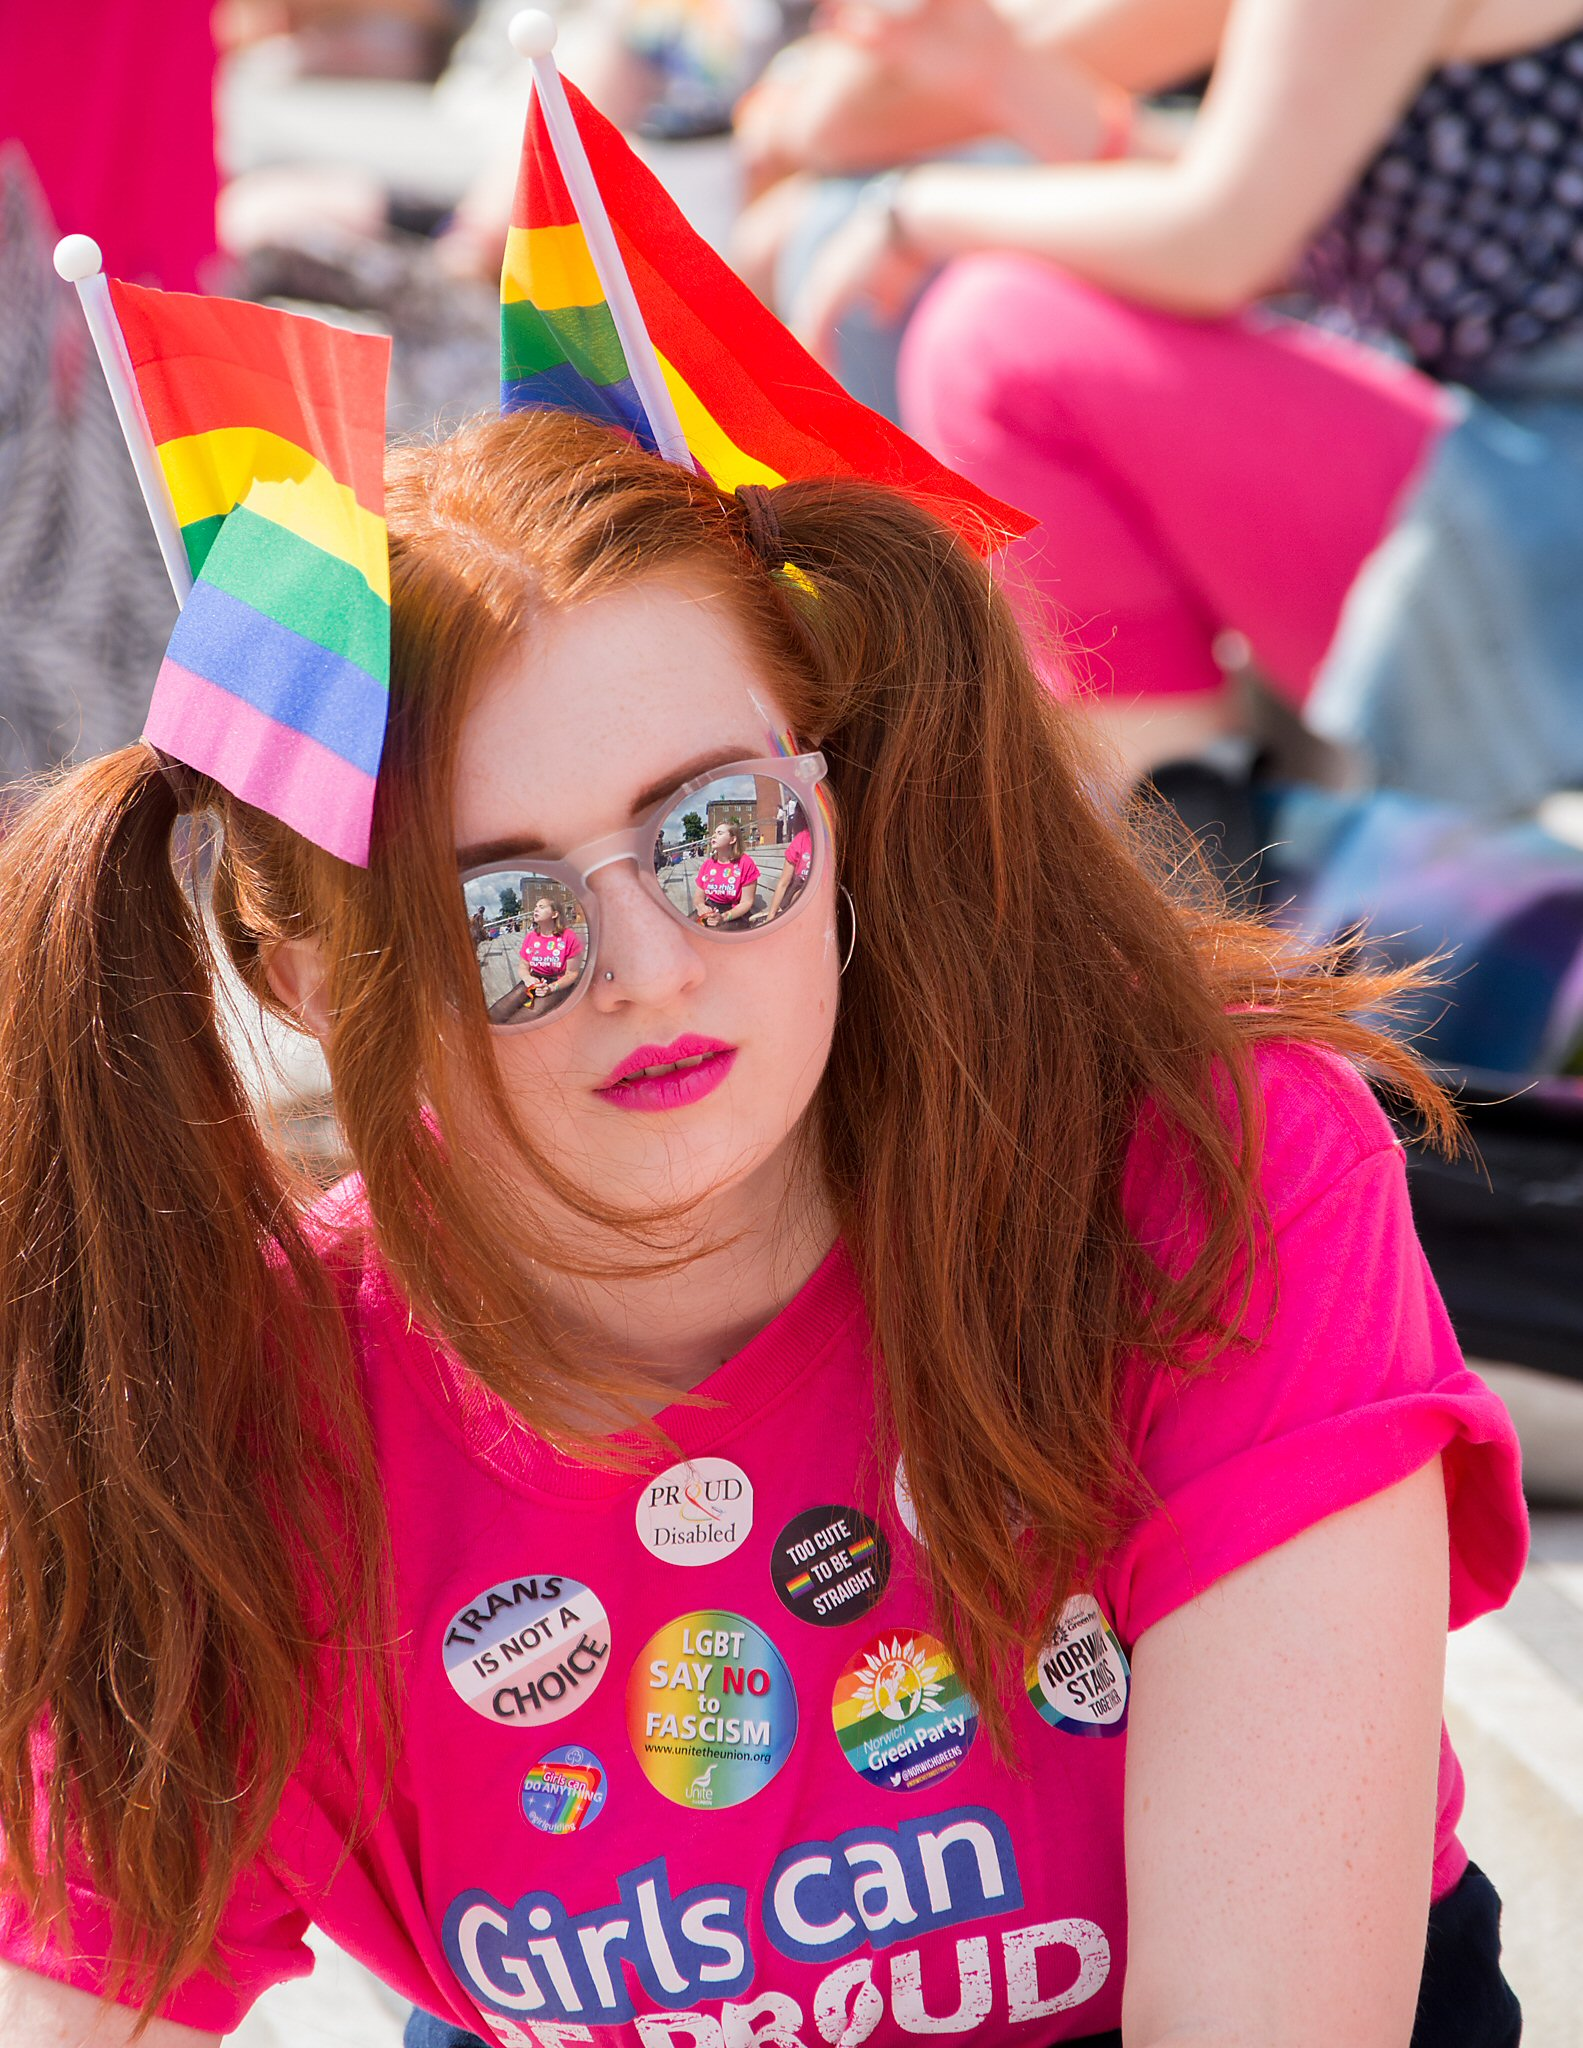 A woman with rainbow flags in her hair.